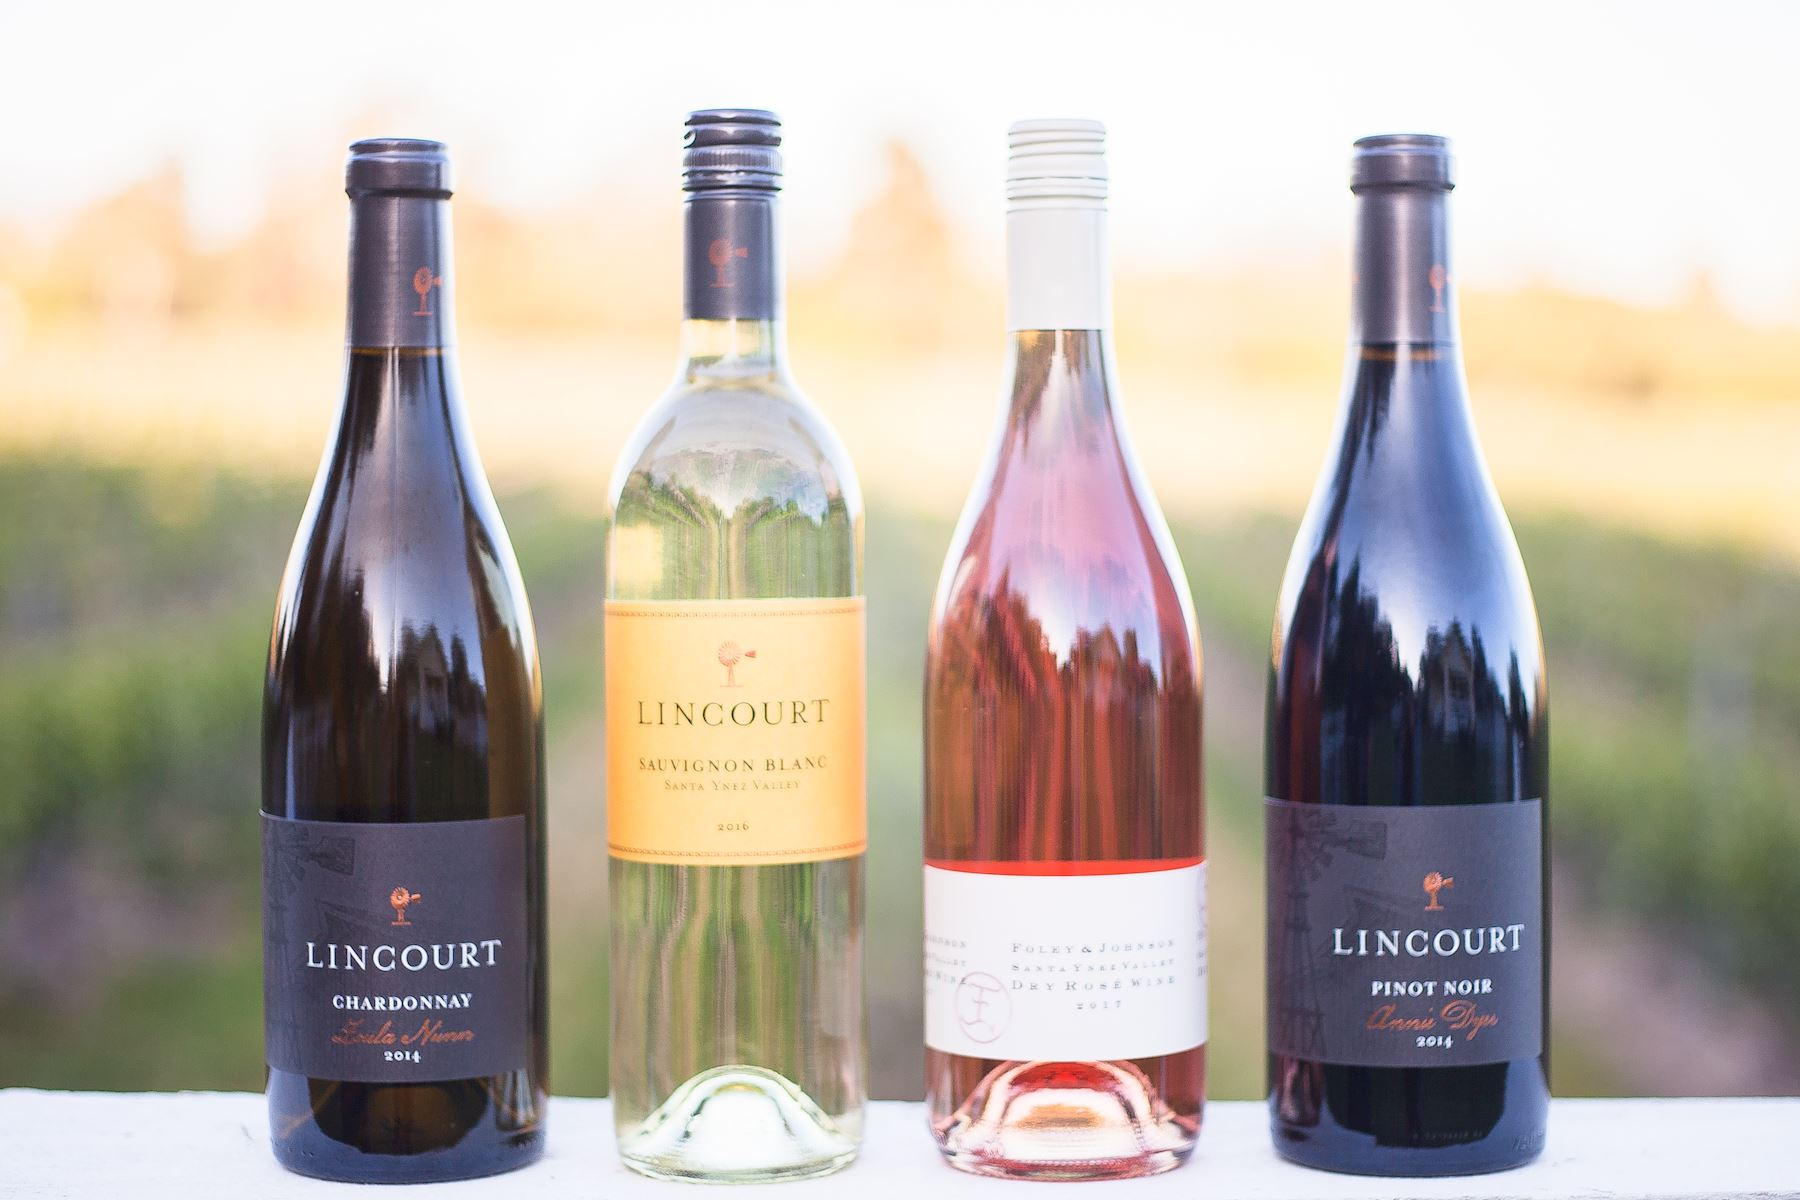 Lineup of Lincourt wines ready to be enjoyed